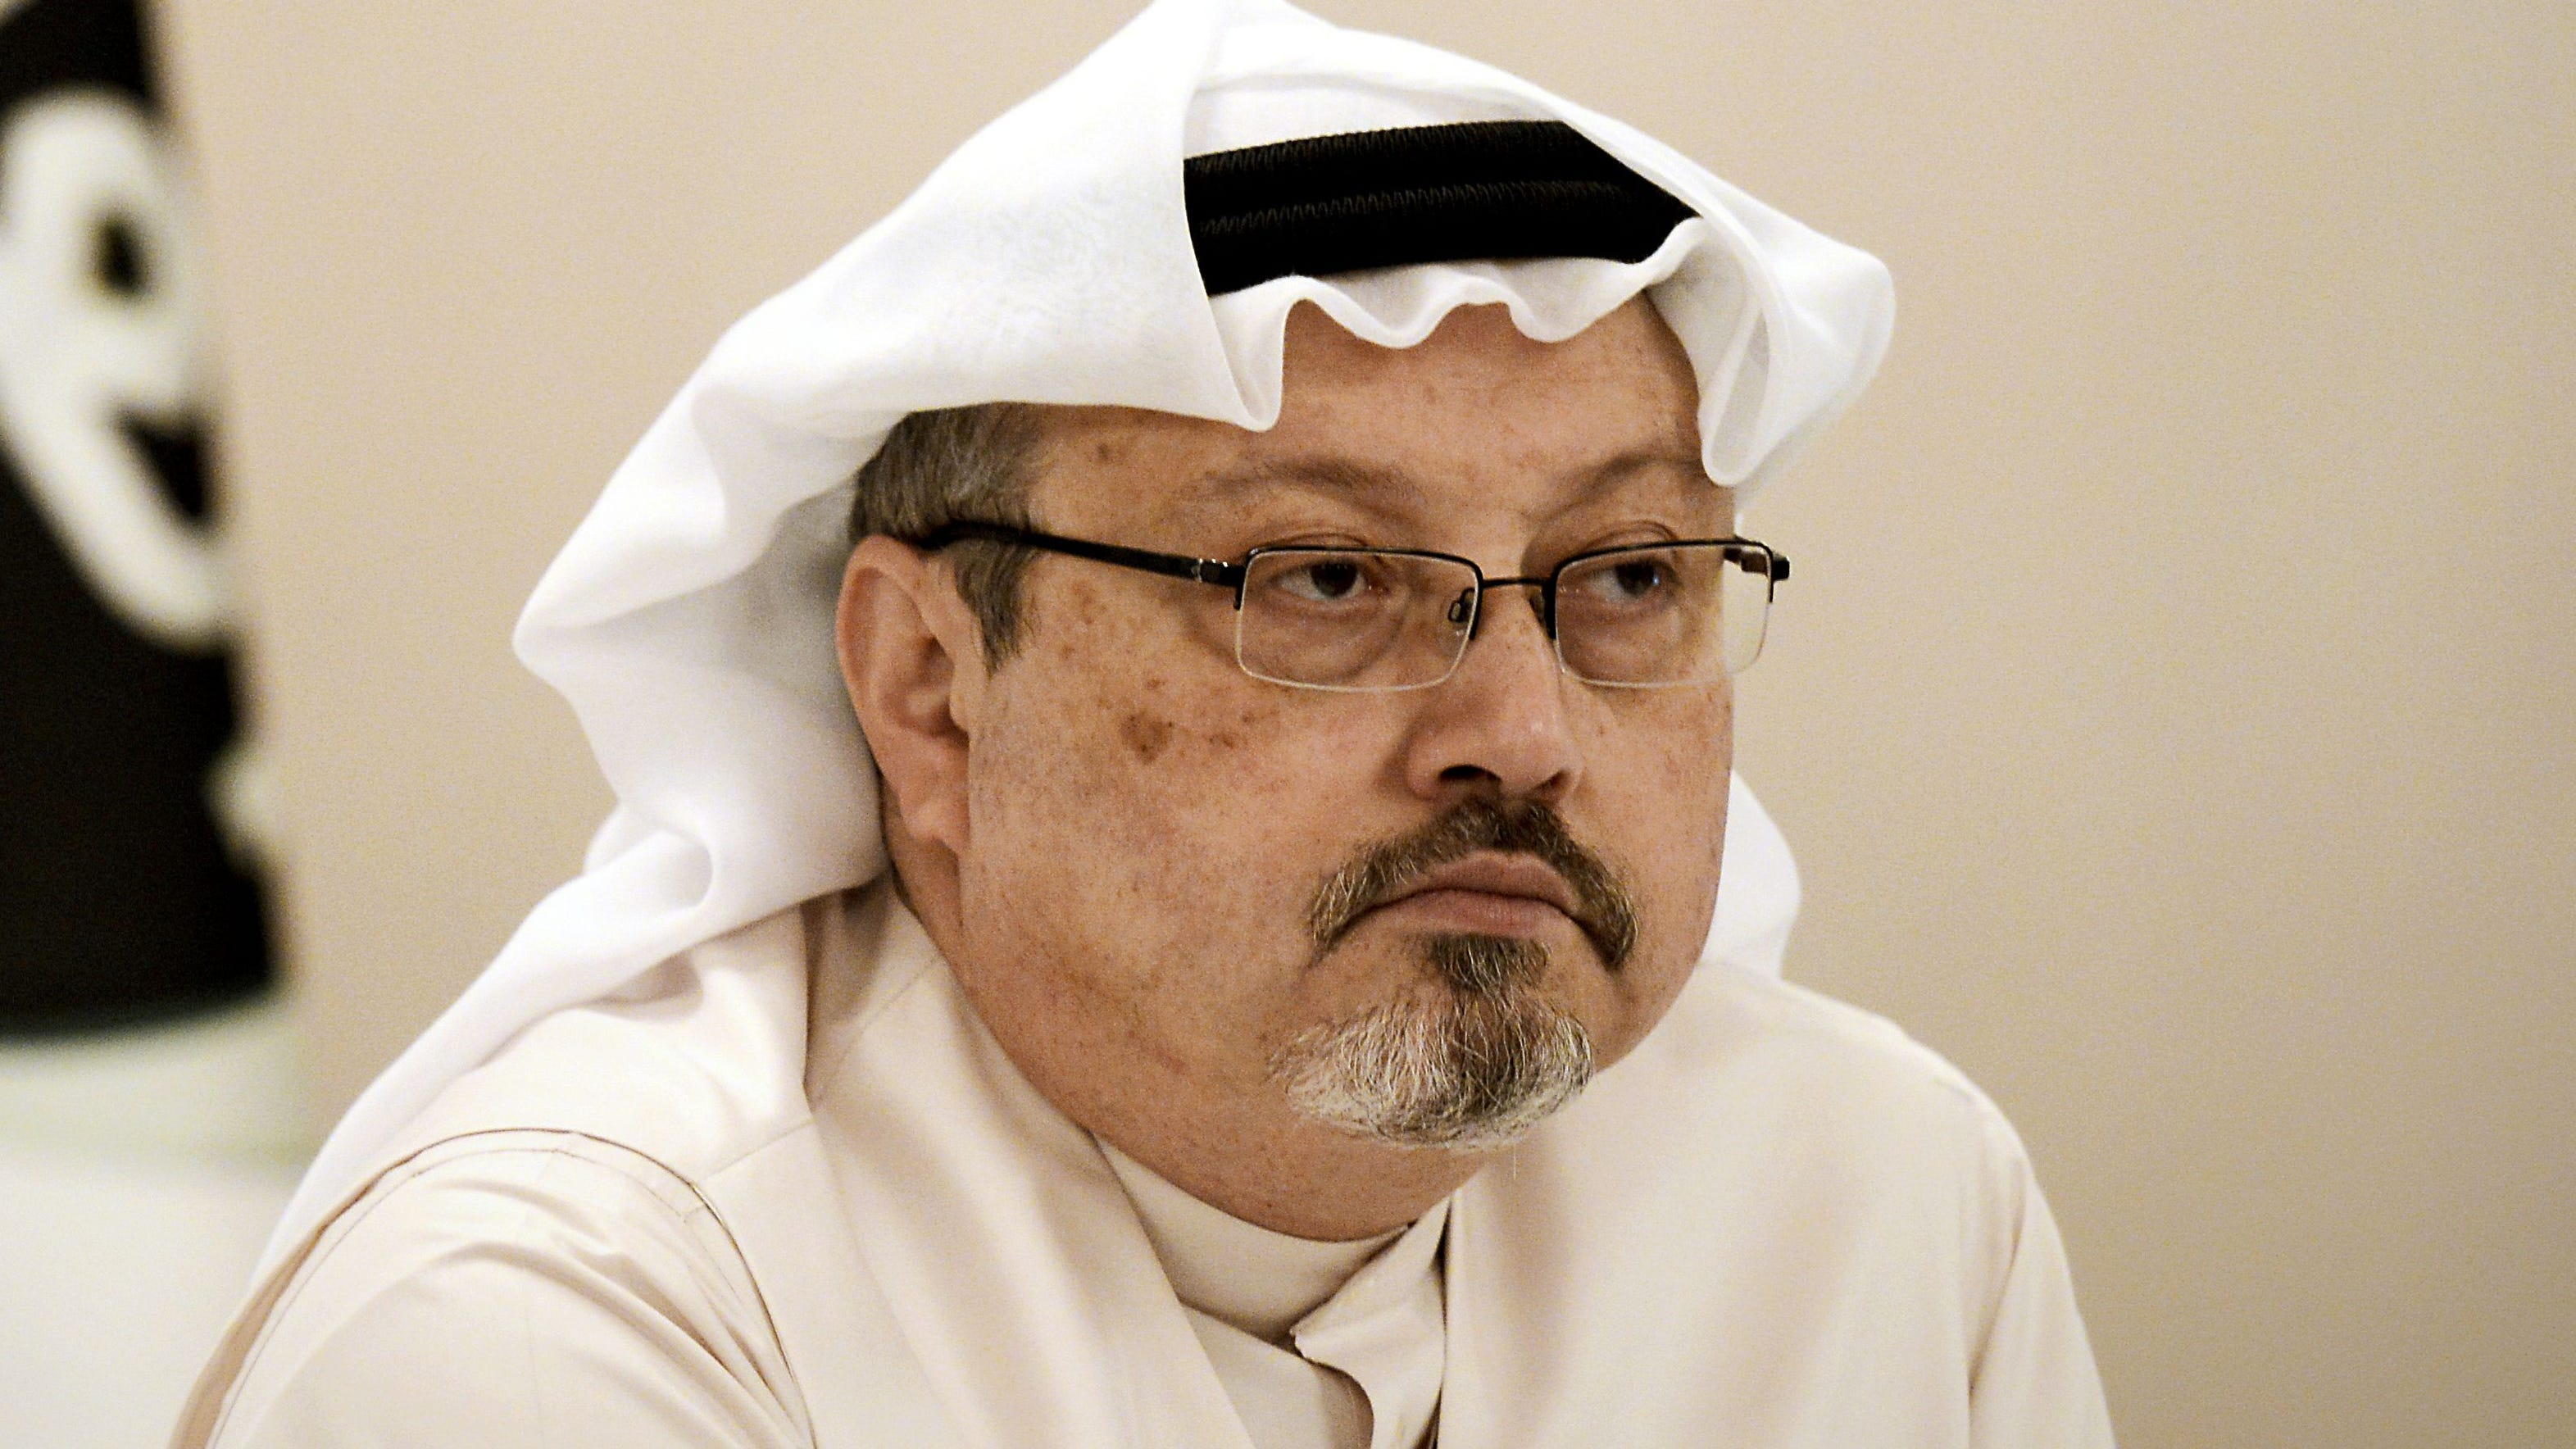 In this photo taken Dec. 15, 2014, Jamal Khashoggi looks on during a press conference in the Bahraini capital of Manama.